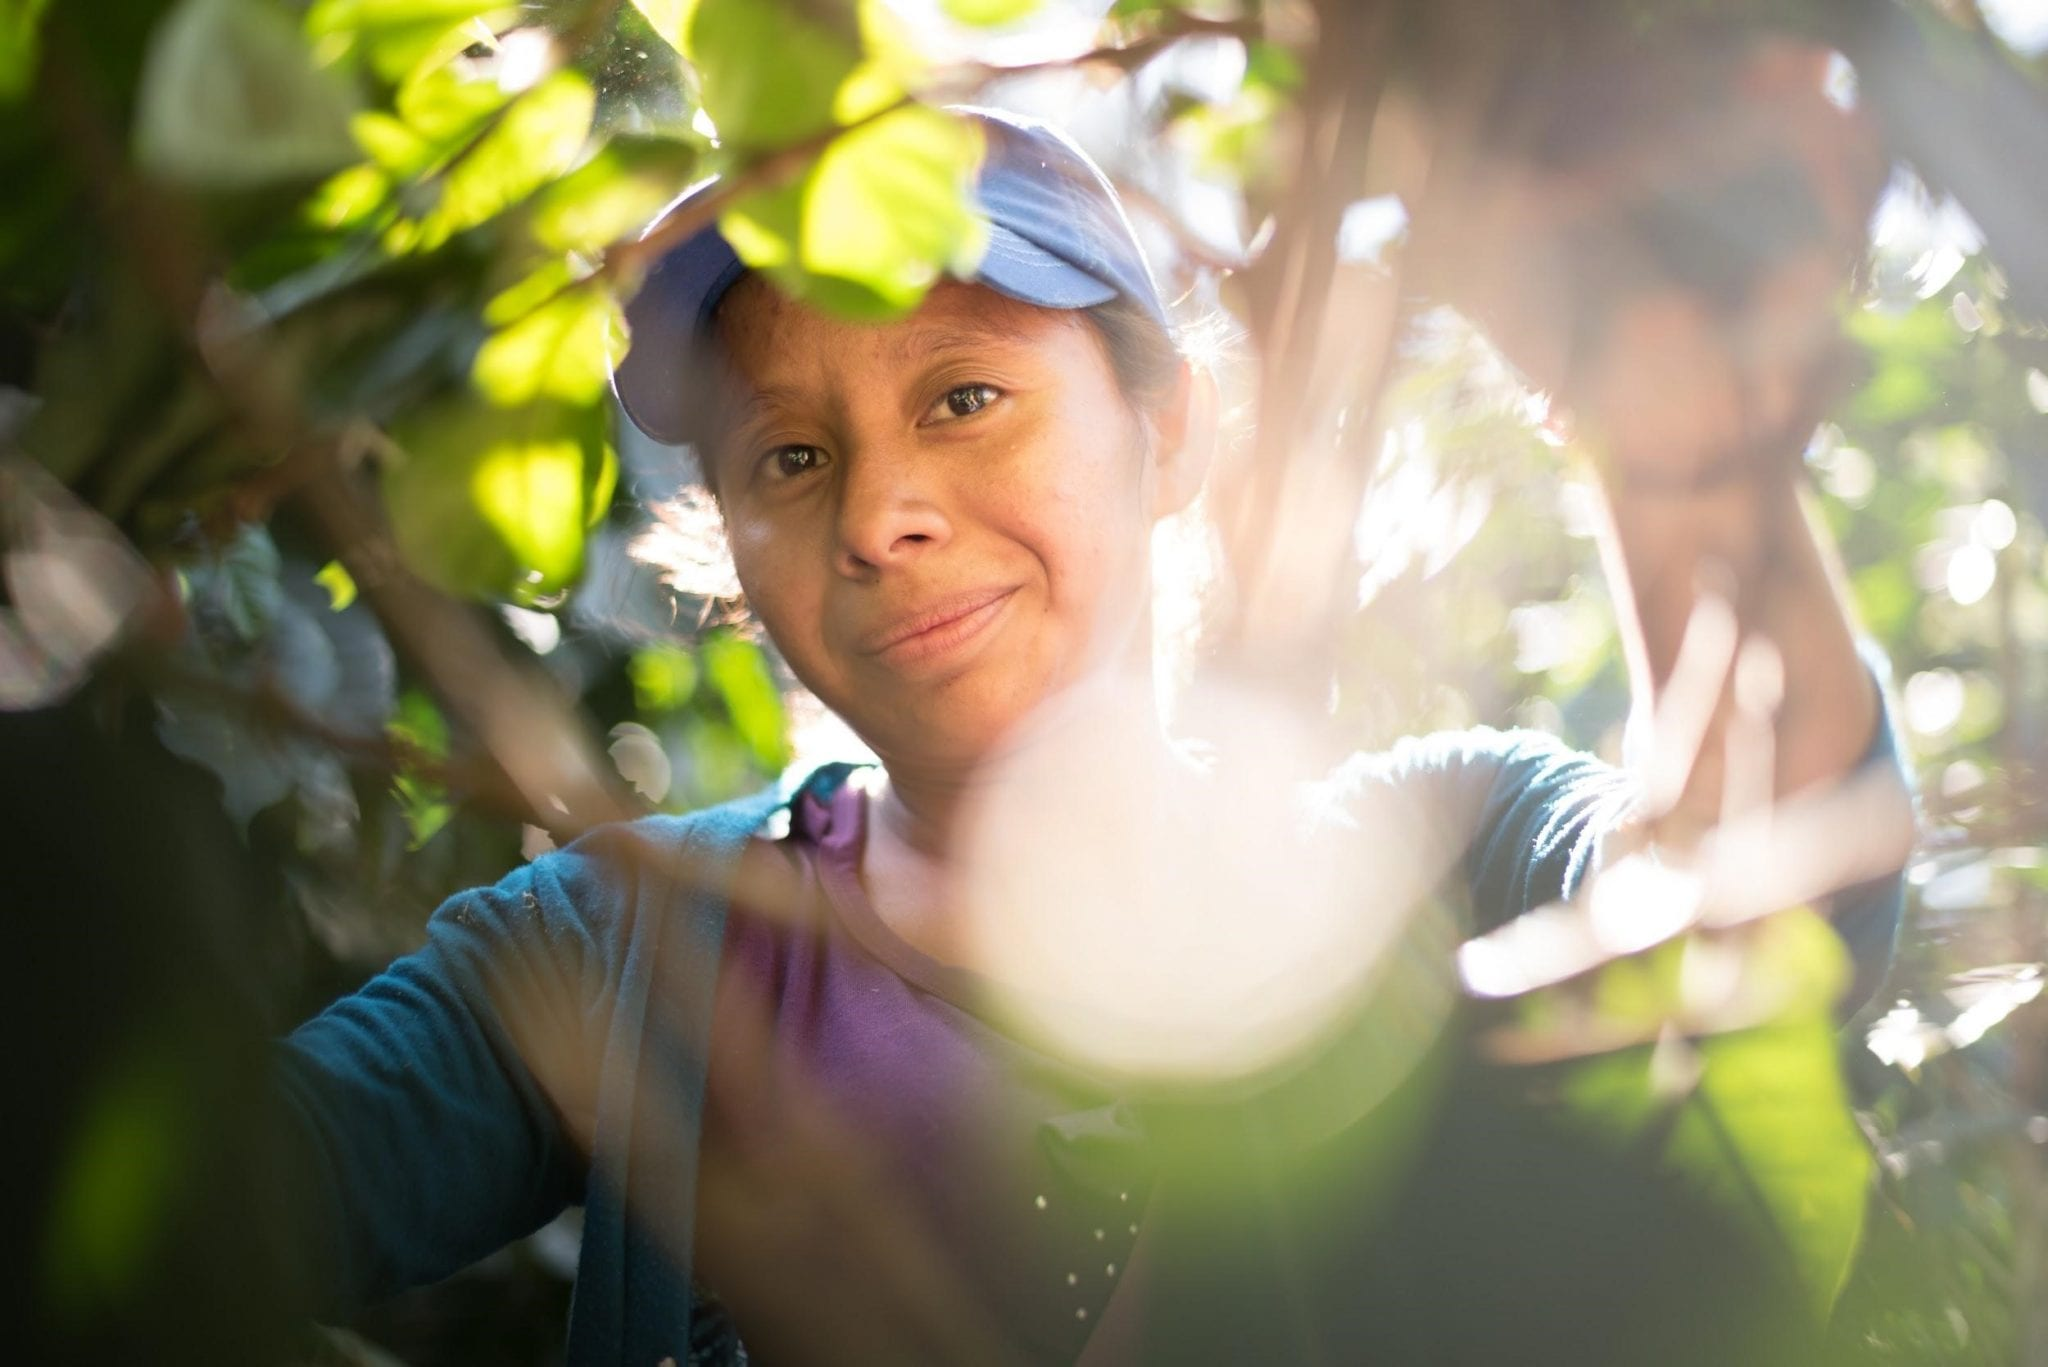 woman coffee picker in a coffee tree